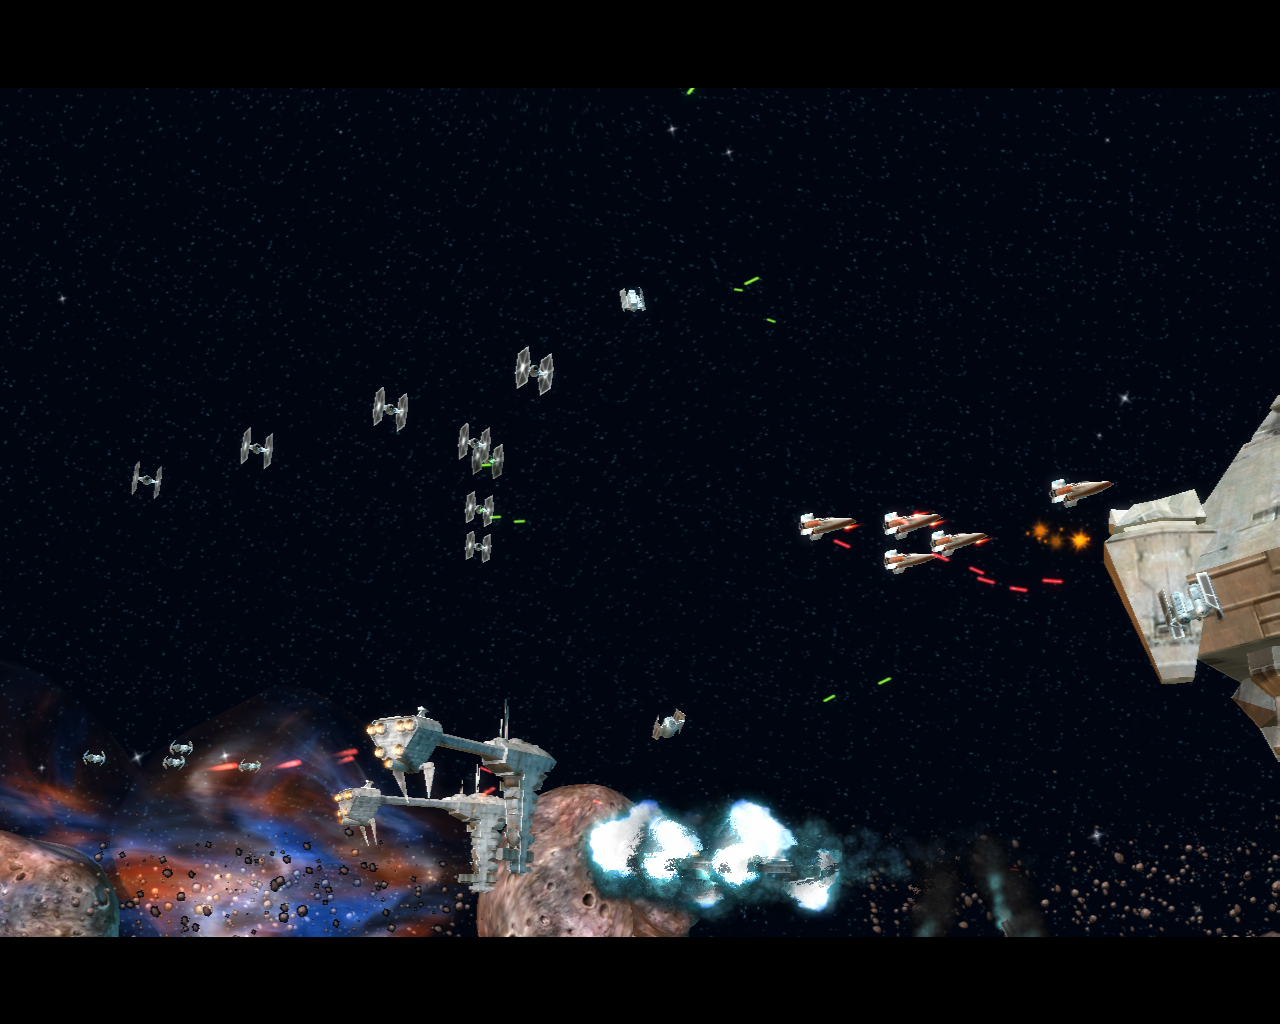 TIE Fighters attempt to shoot down pesky A-Wings as capital ships are bombed